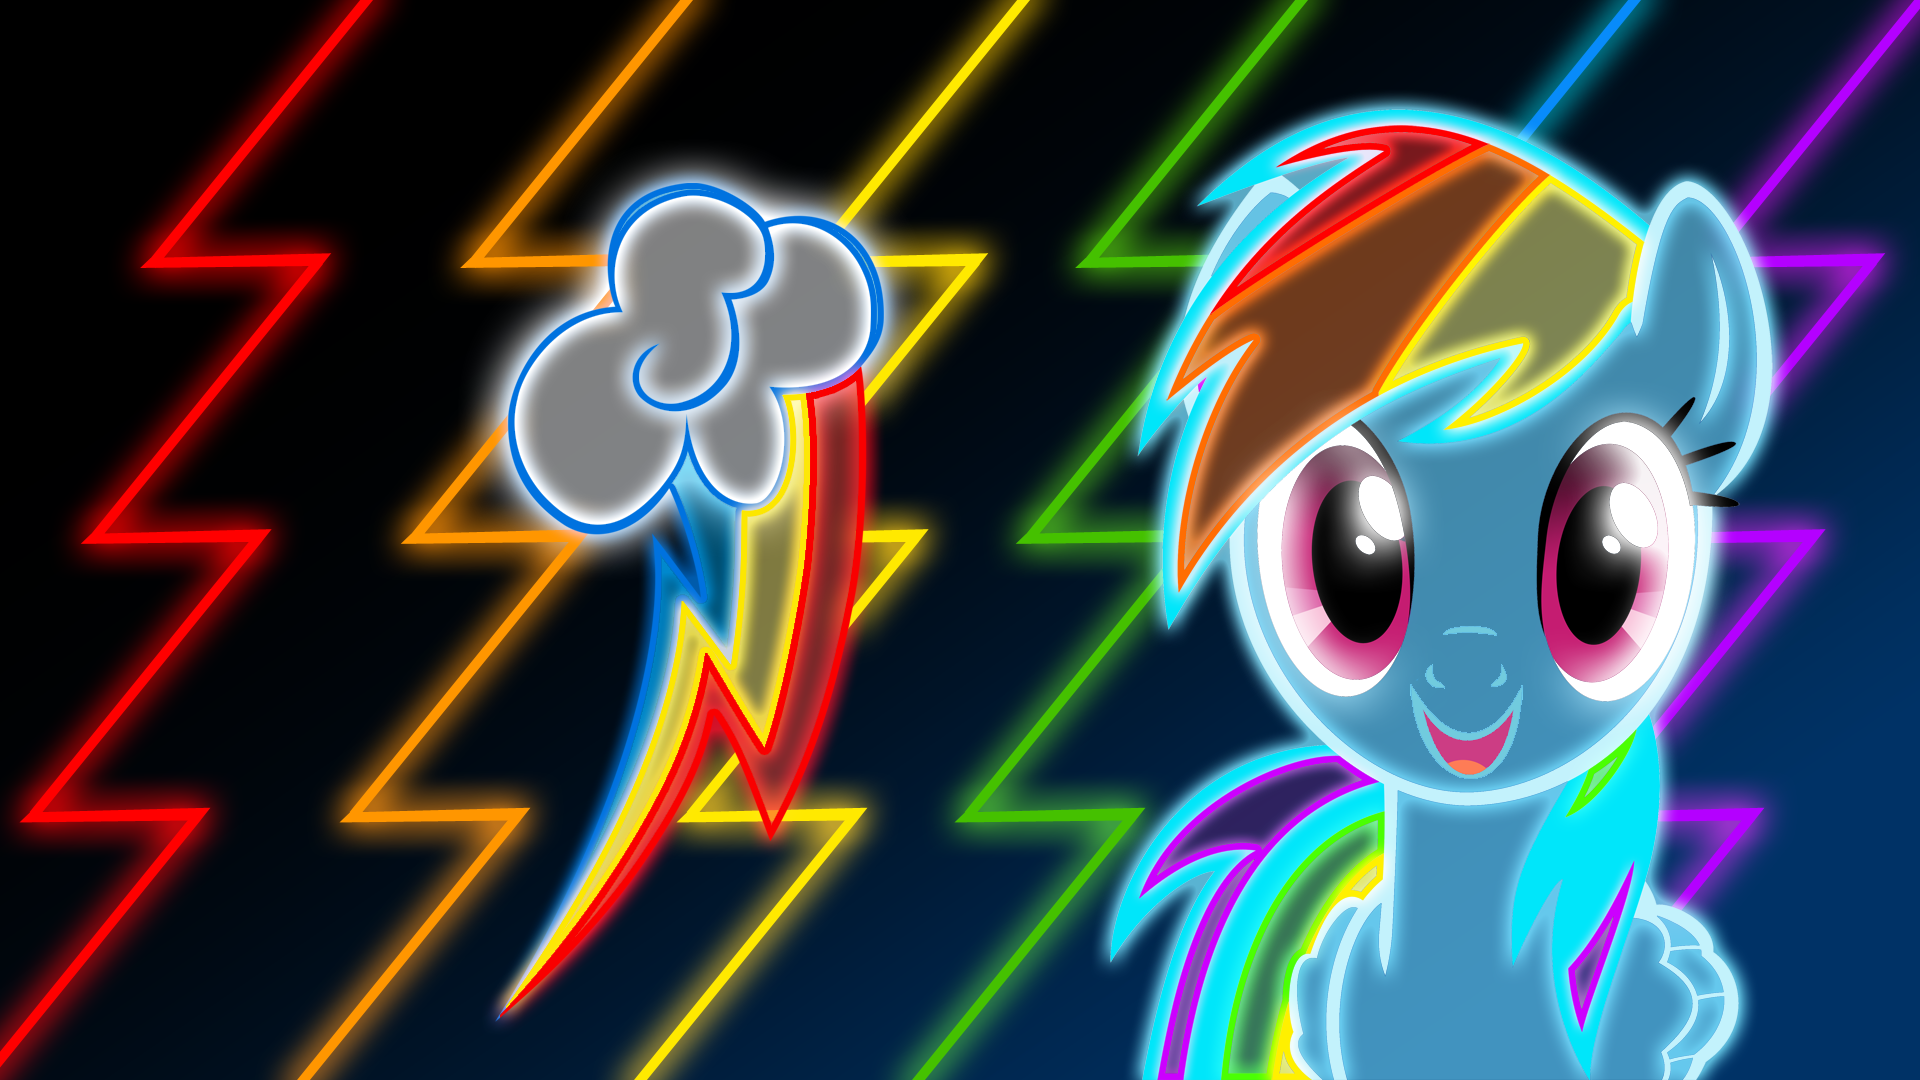 Awesome Colorful Neon Backgrounds Neon rainbow dash wallpaper by 1920x1080